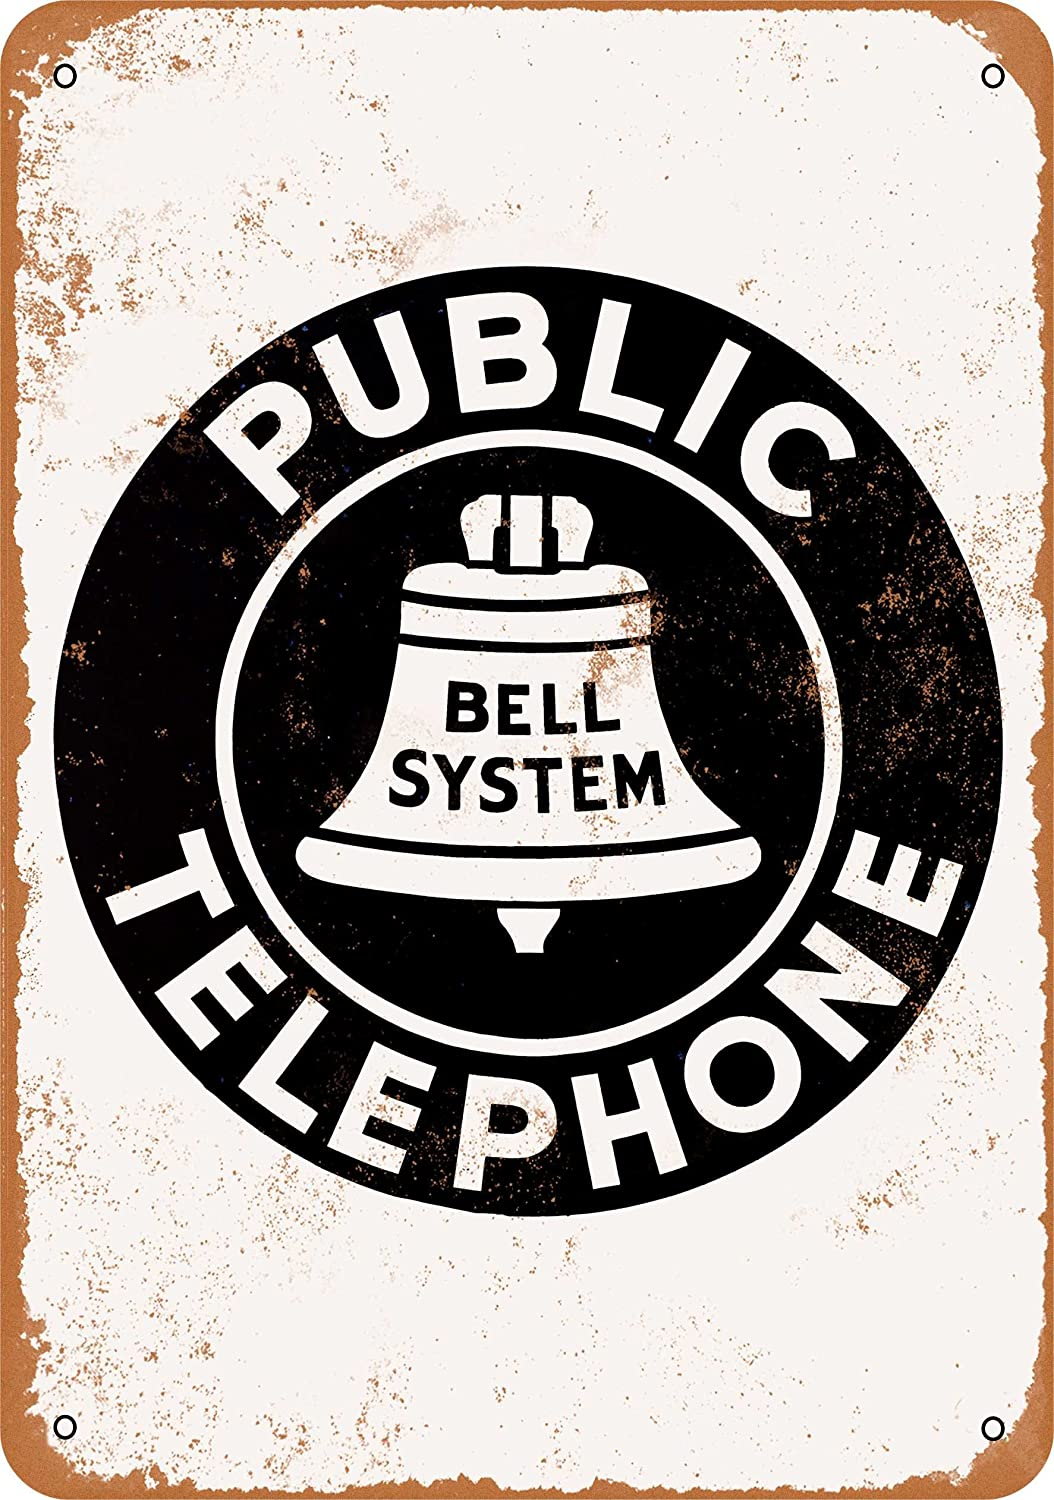 Dedication Wall-Color 7 x Inventory cleanup selling sale 10 Metal Sign Public - Telephone Bell Vi System